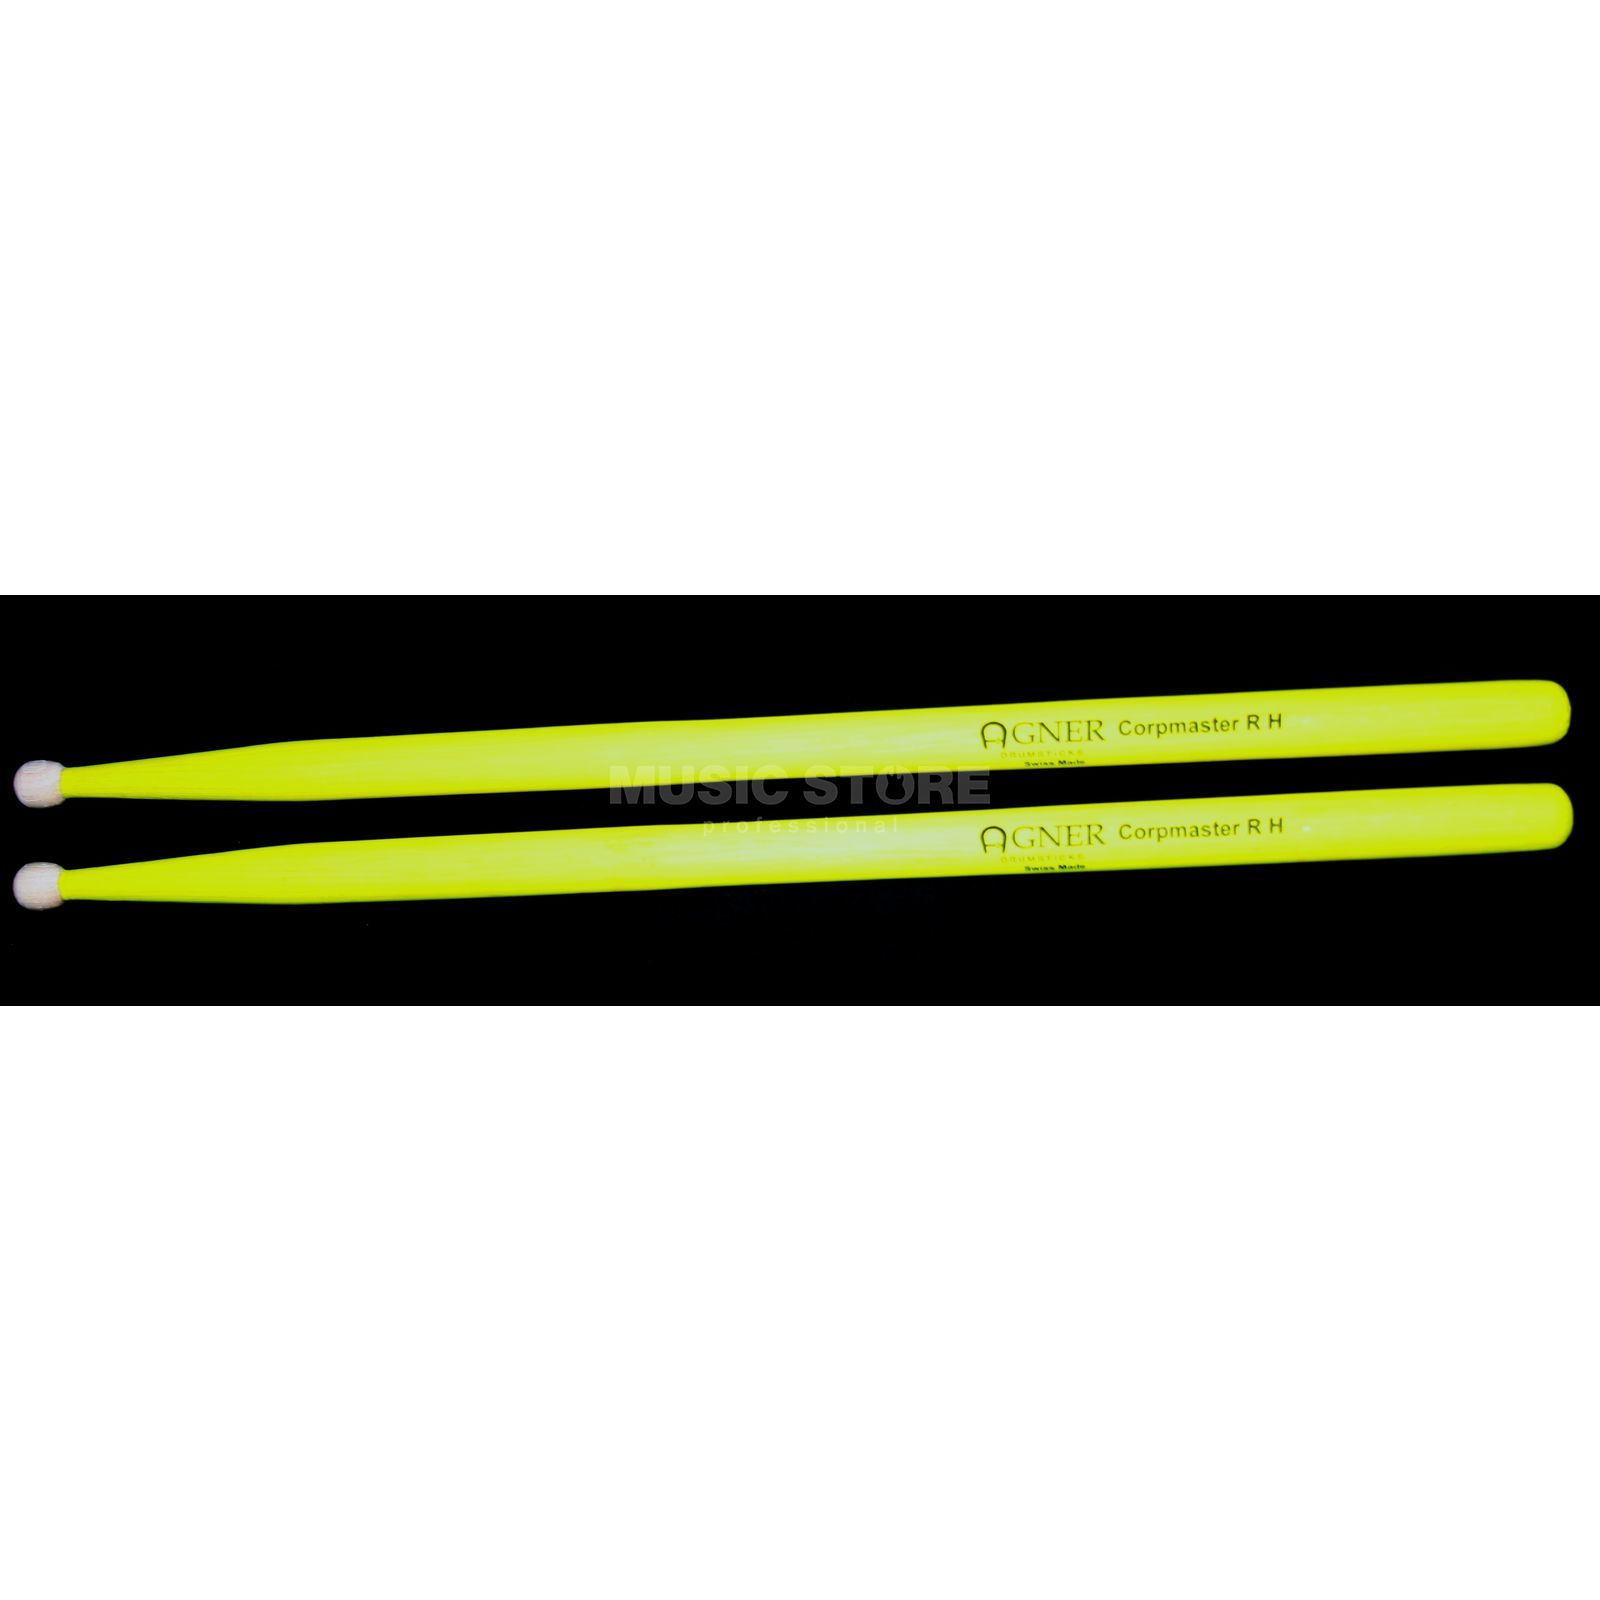 Agner UV-Marching Sticks, 4A, Corpmaster R H, Yellow Изображение товара